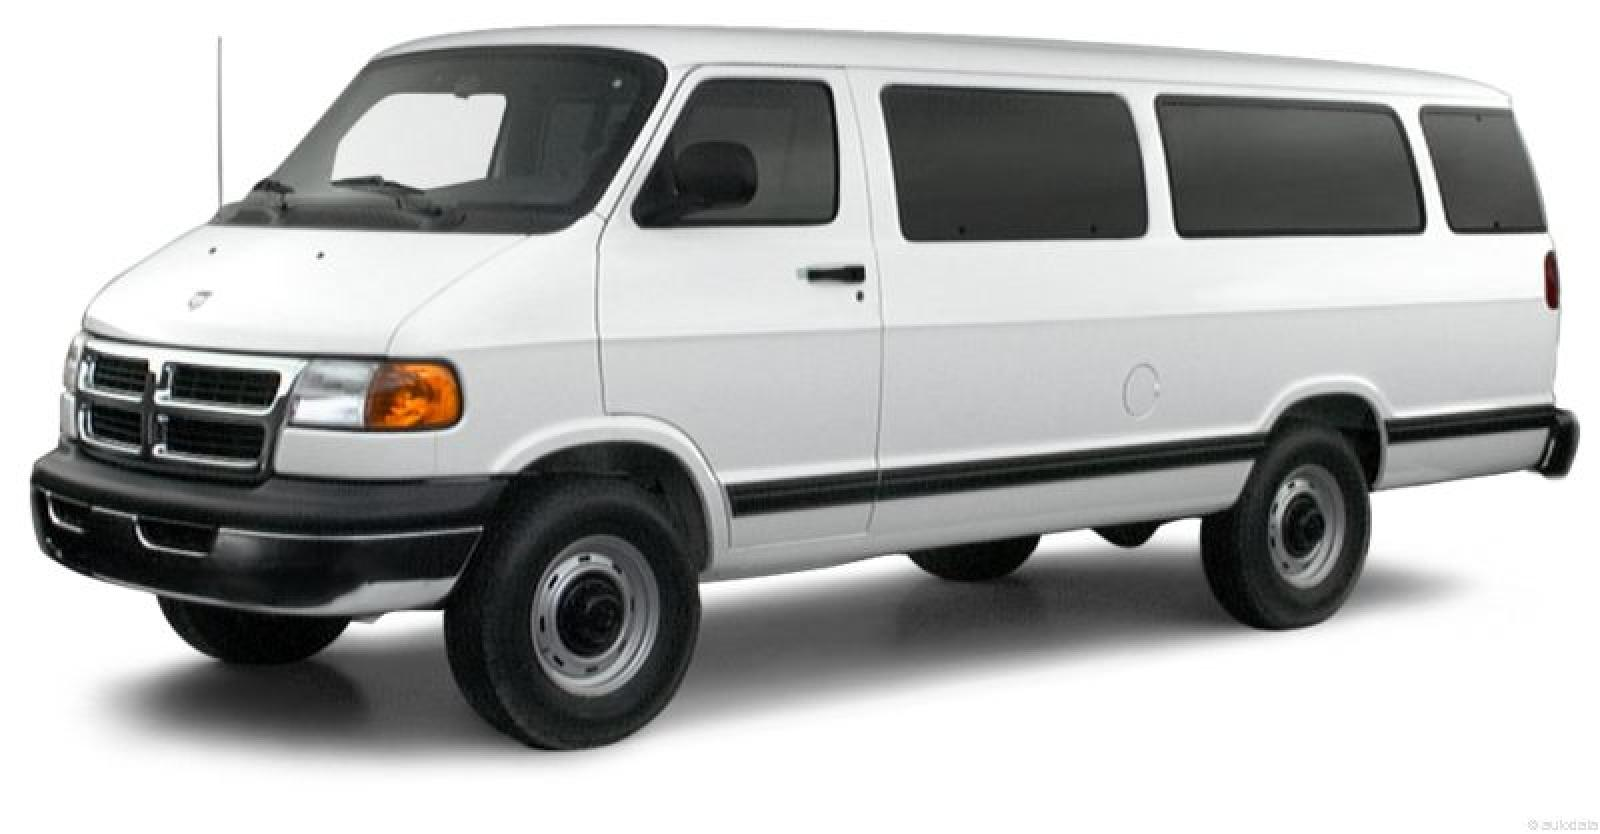 1999 dodge ram wagon information and photos zombiedrive. Black Bedroom Furniture Sets. Home Design Ideas